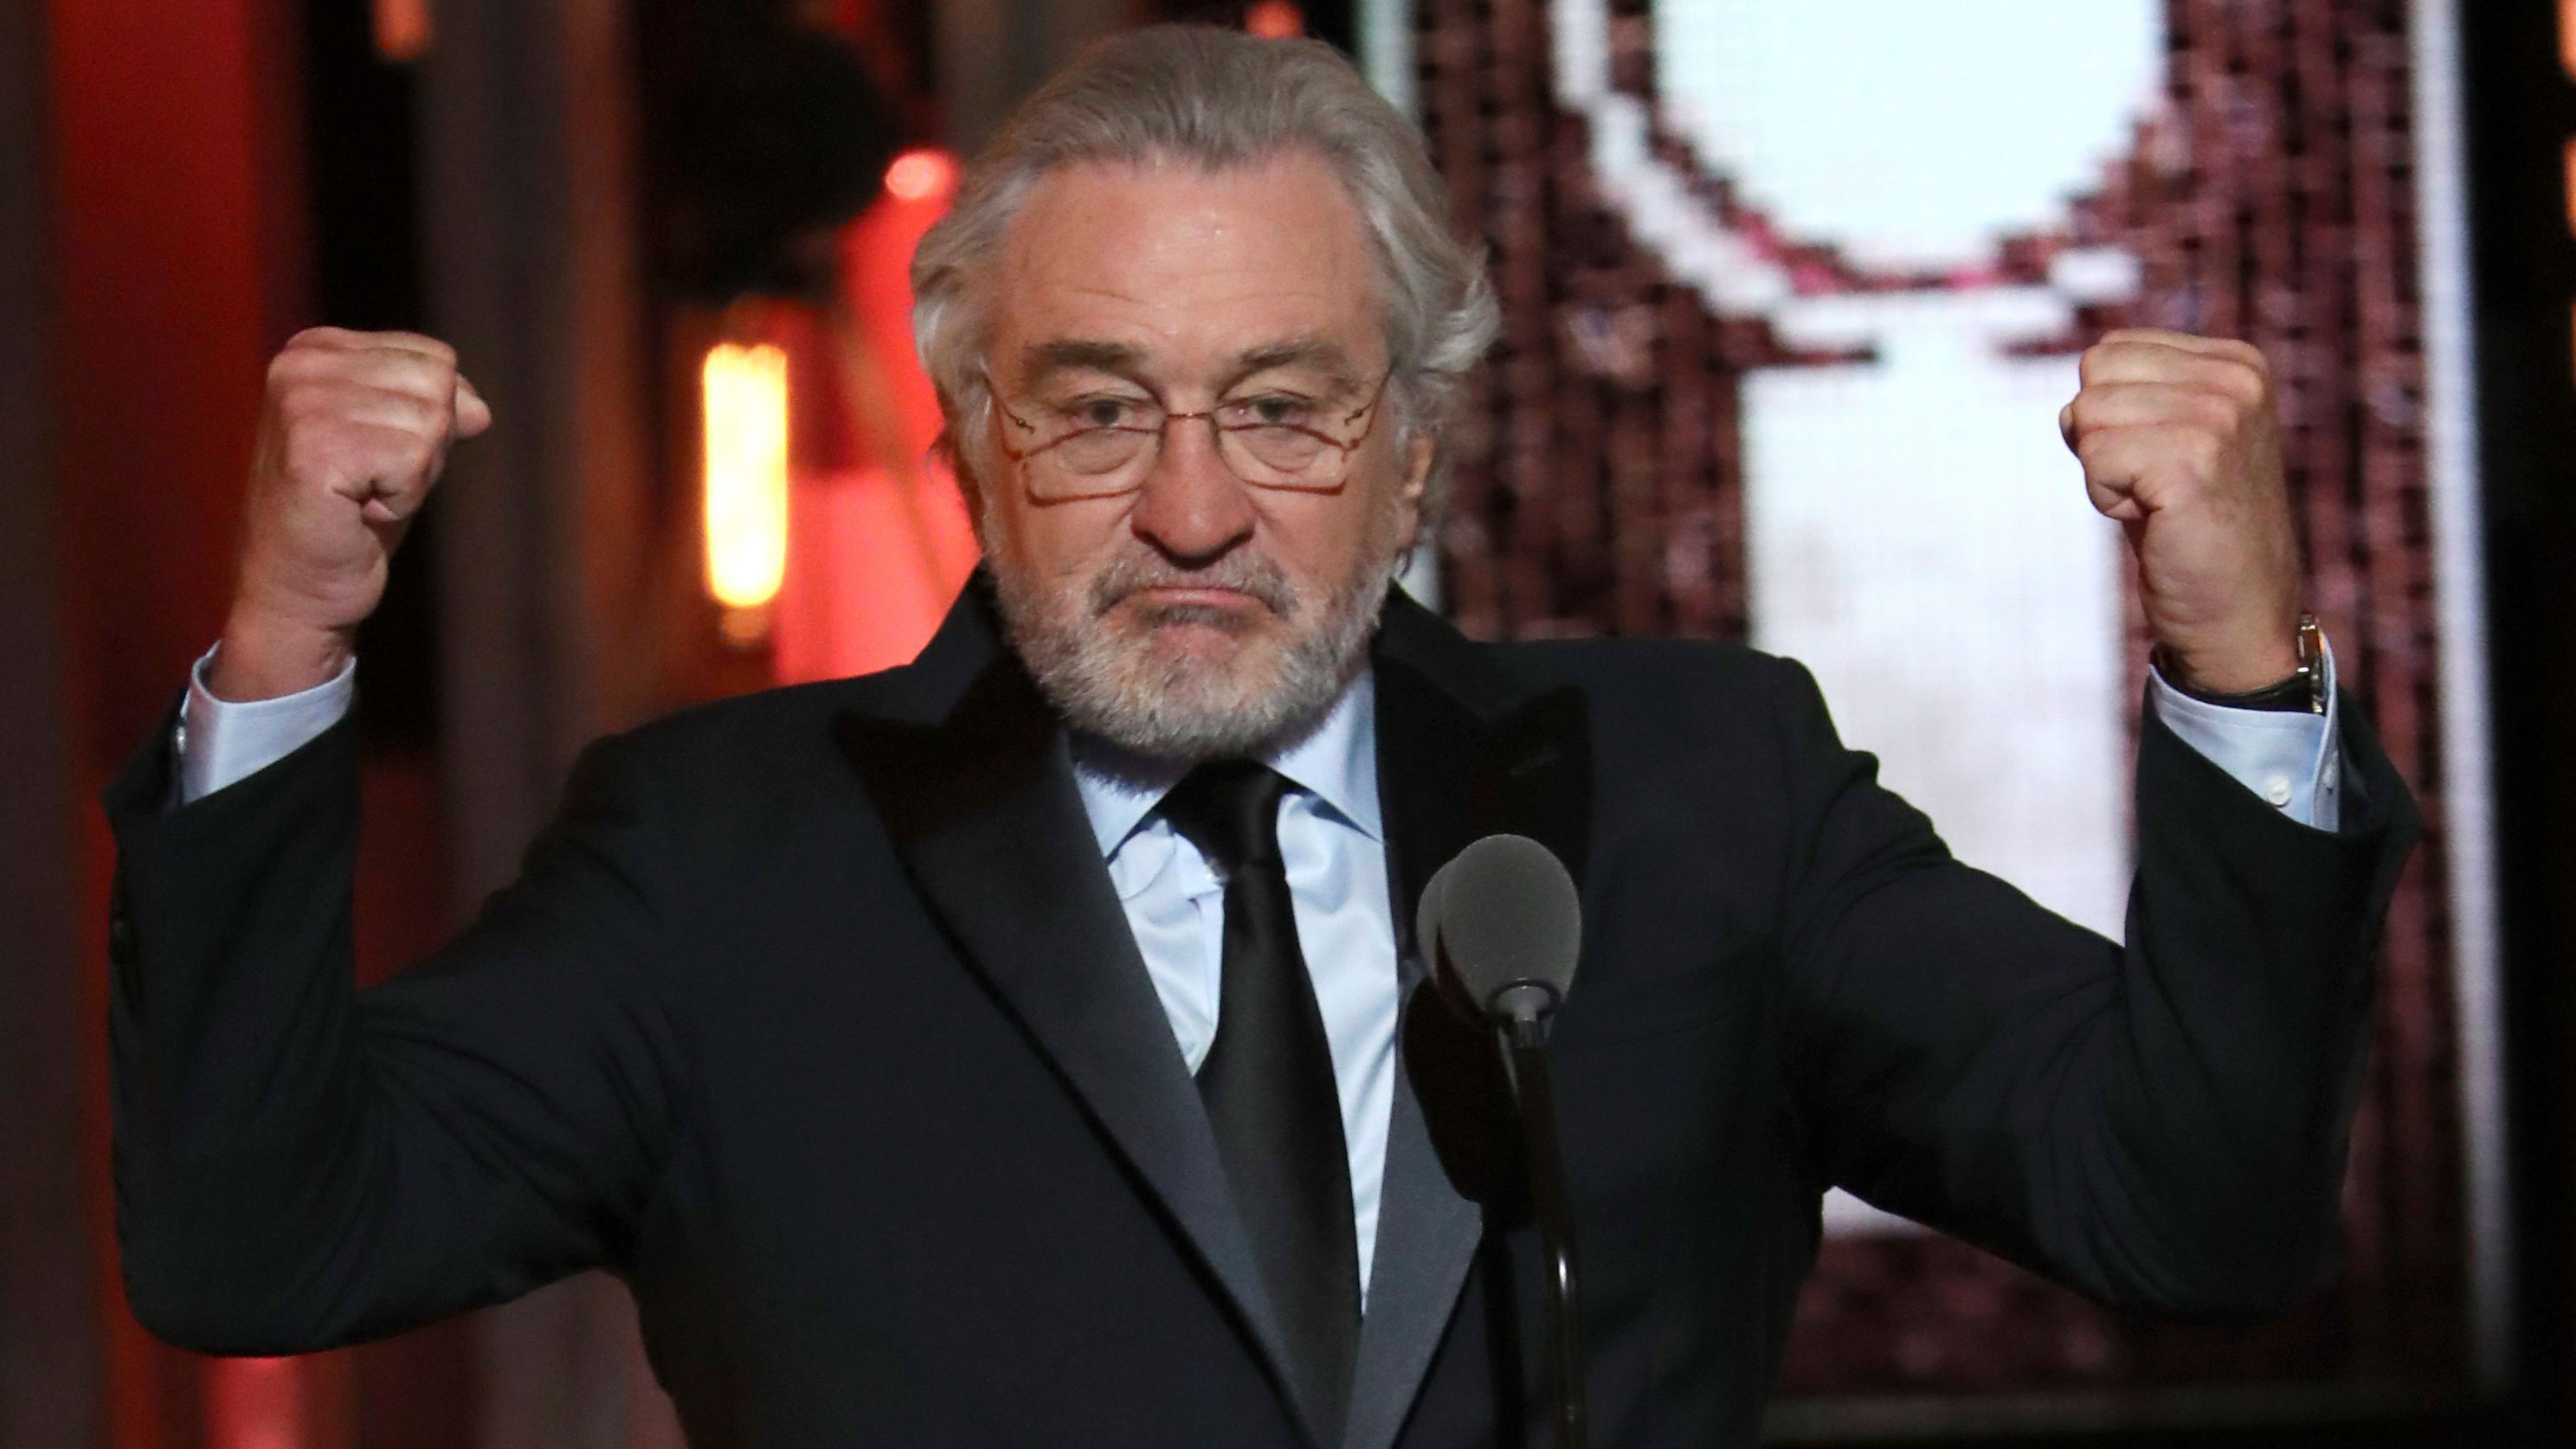 Celebs React to Robert De Niro's Viral Anti-Trump Tony Awards Speech